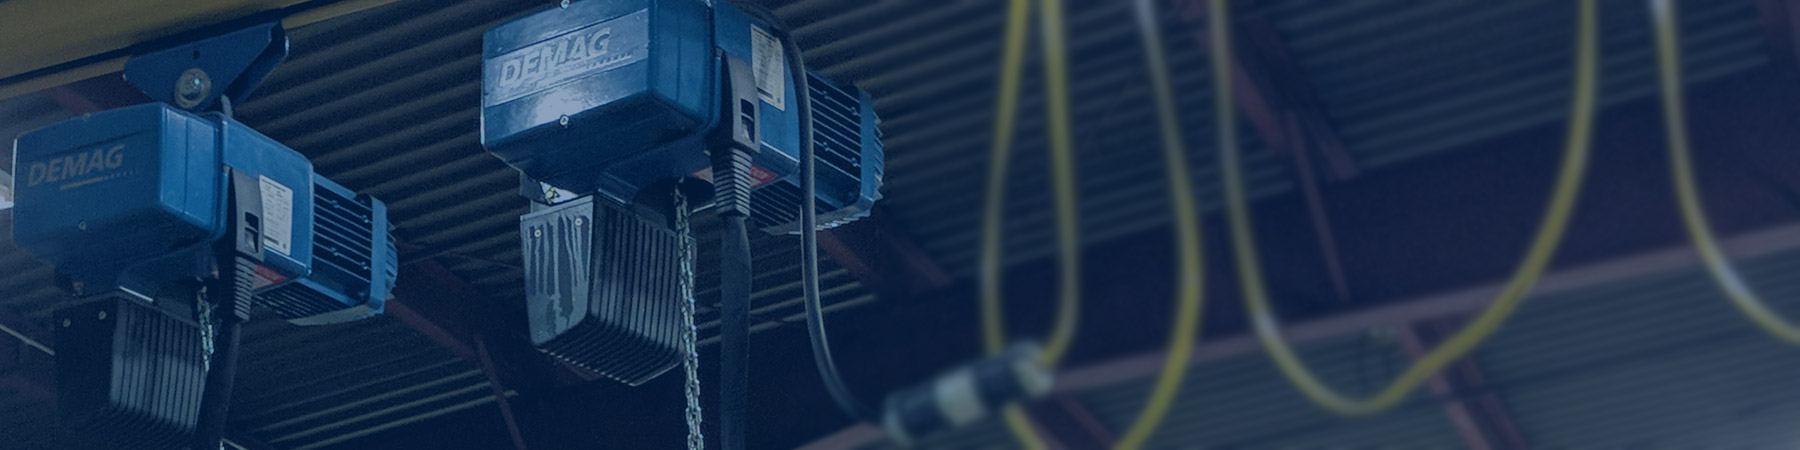 Demag Electric Chain Hoists